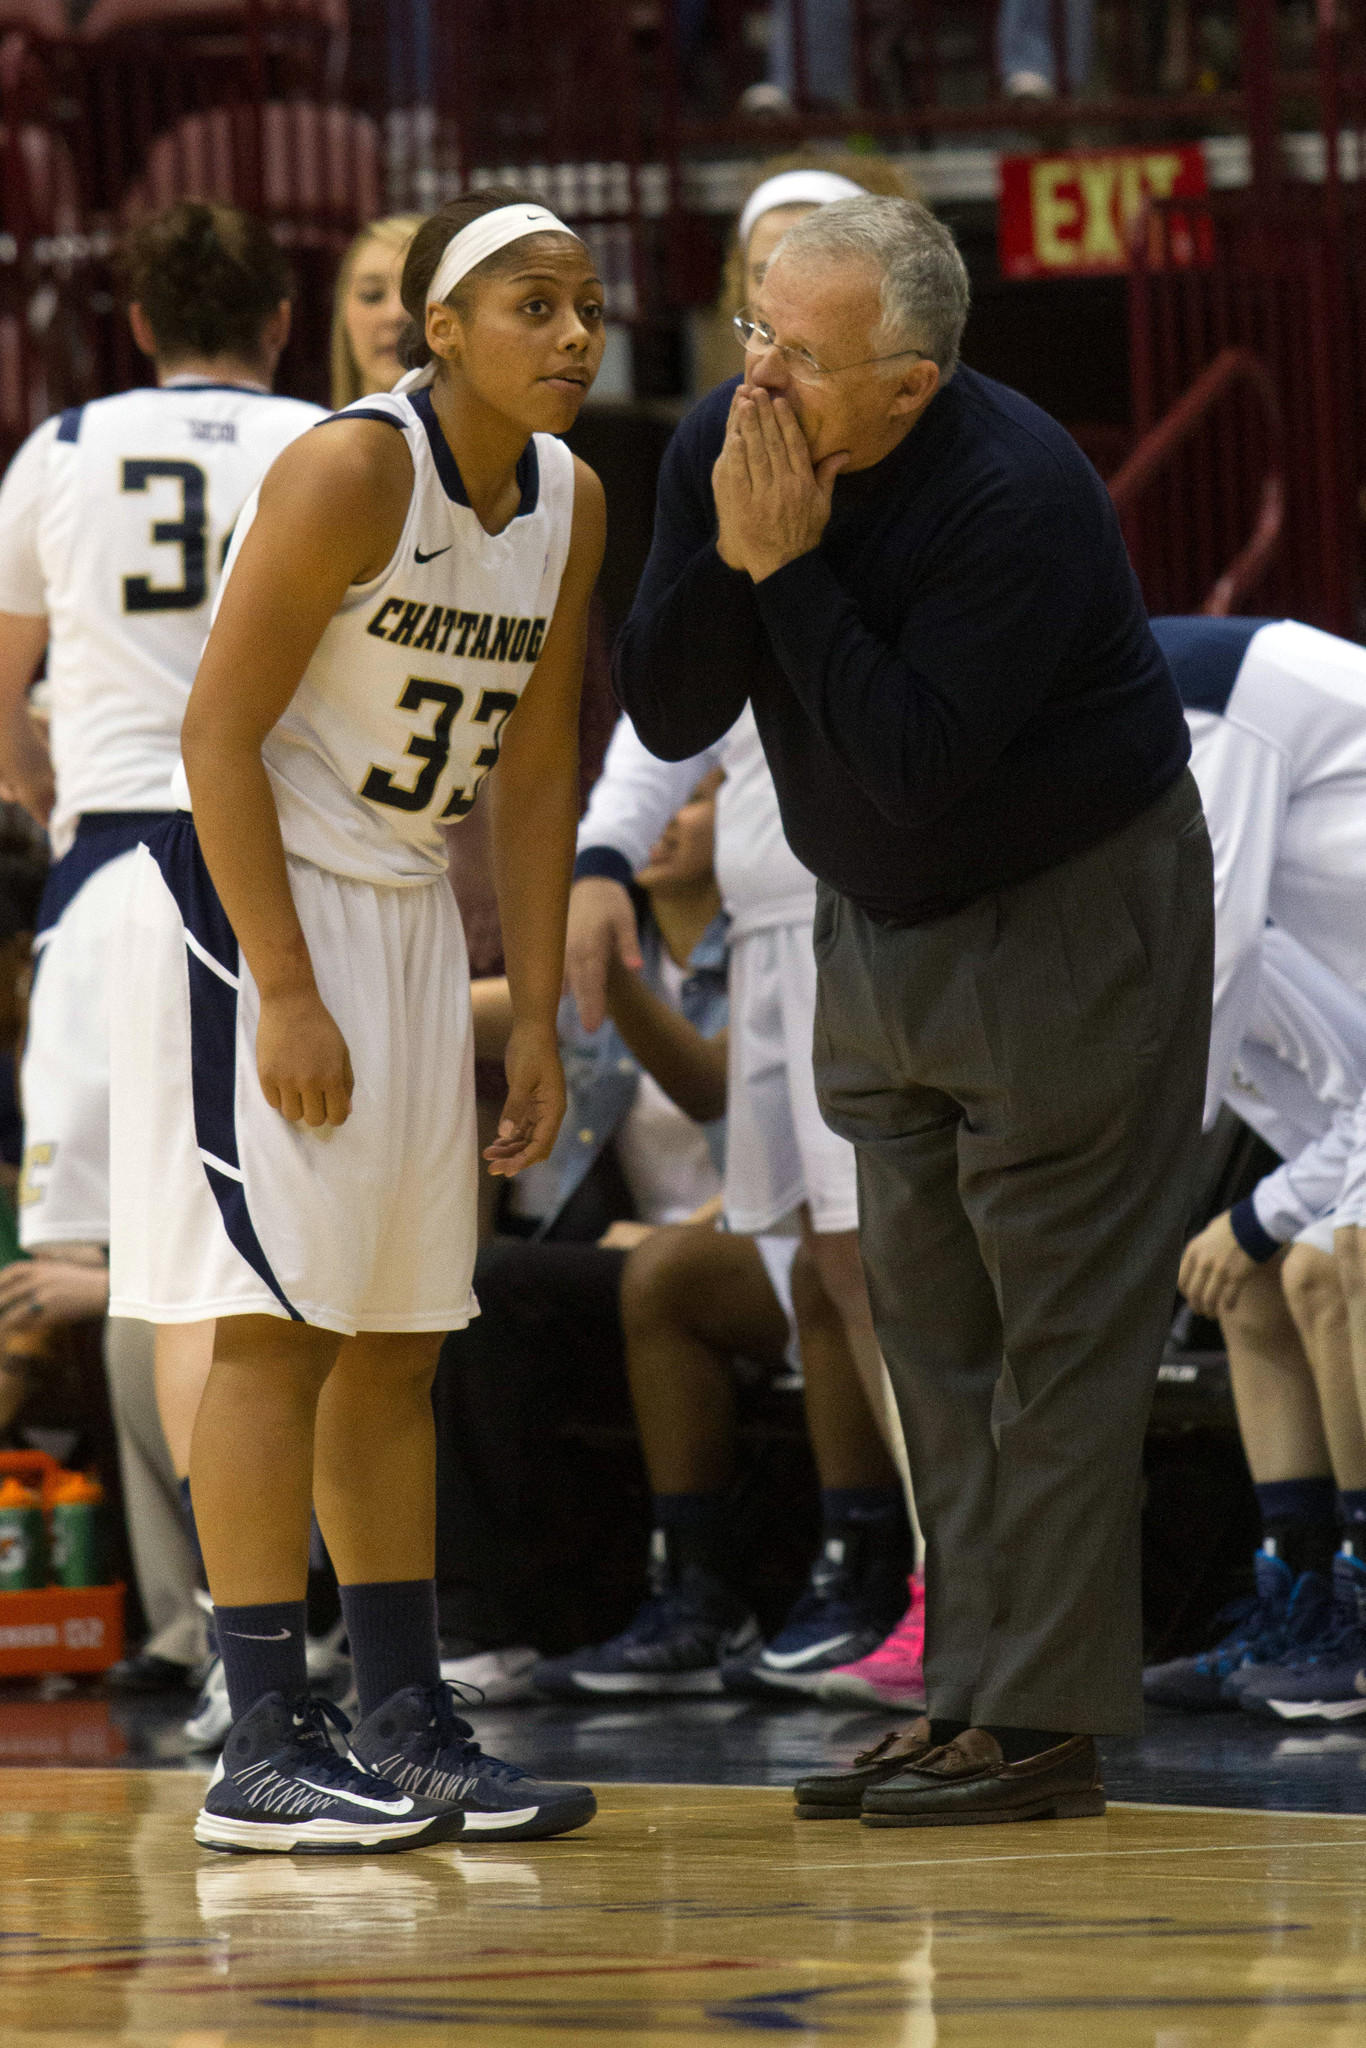 Chattanooga Lady Mocs head coach Jim Foster talks with guard Tatianna Jackson (33) during the second half against the Davidson Wildcats of the championship game of the Southern Conference basketball tournament. Fister has his fourth program into the NCAA tournament.